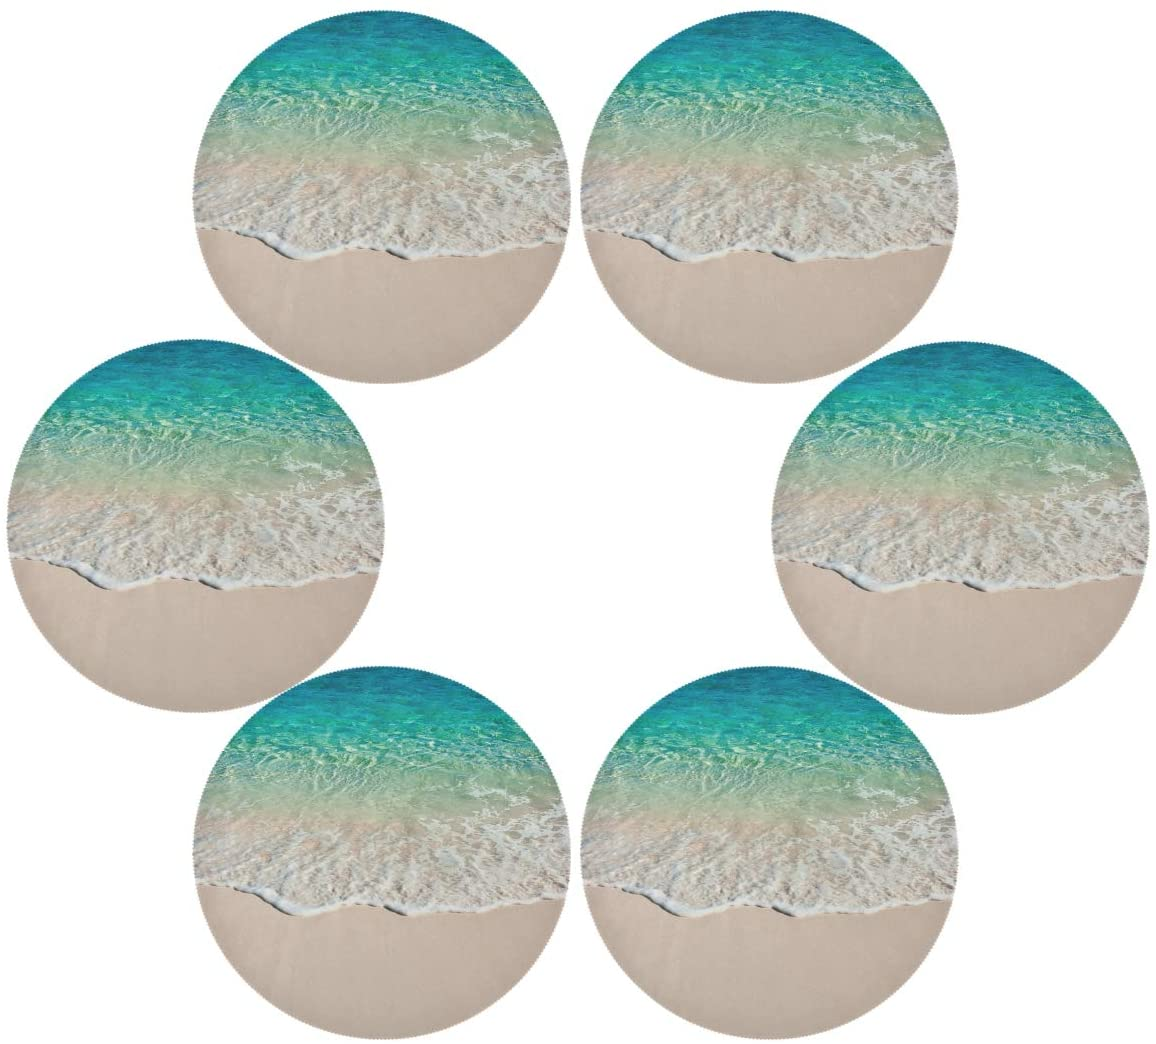 senya Wave of The Sea Round Place mats for Kitchen Dining Table Runner Heat Insulation Non-Slip Washable Fall Placemats Set of 6